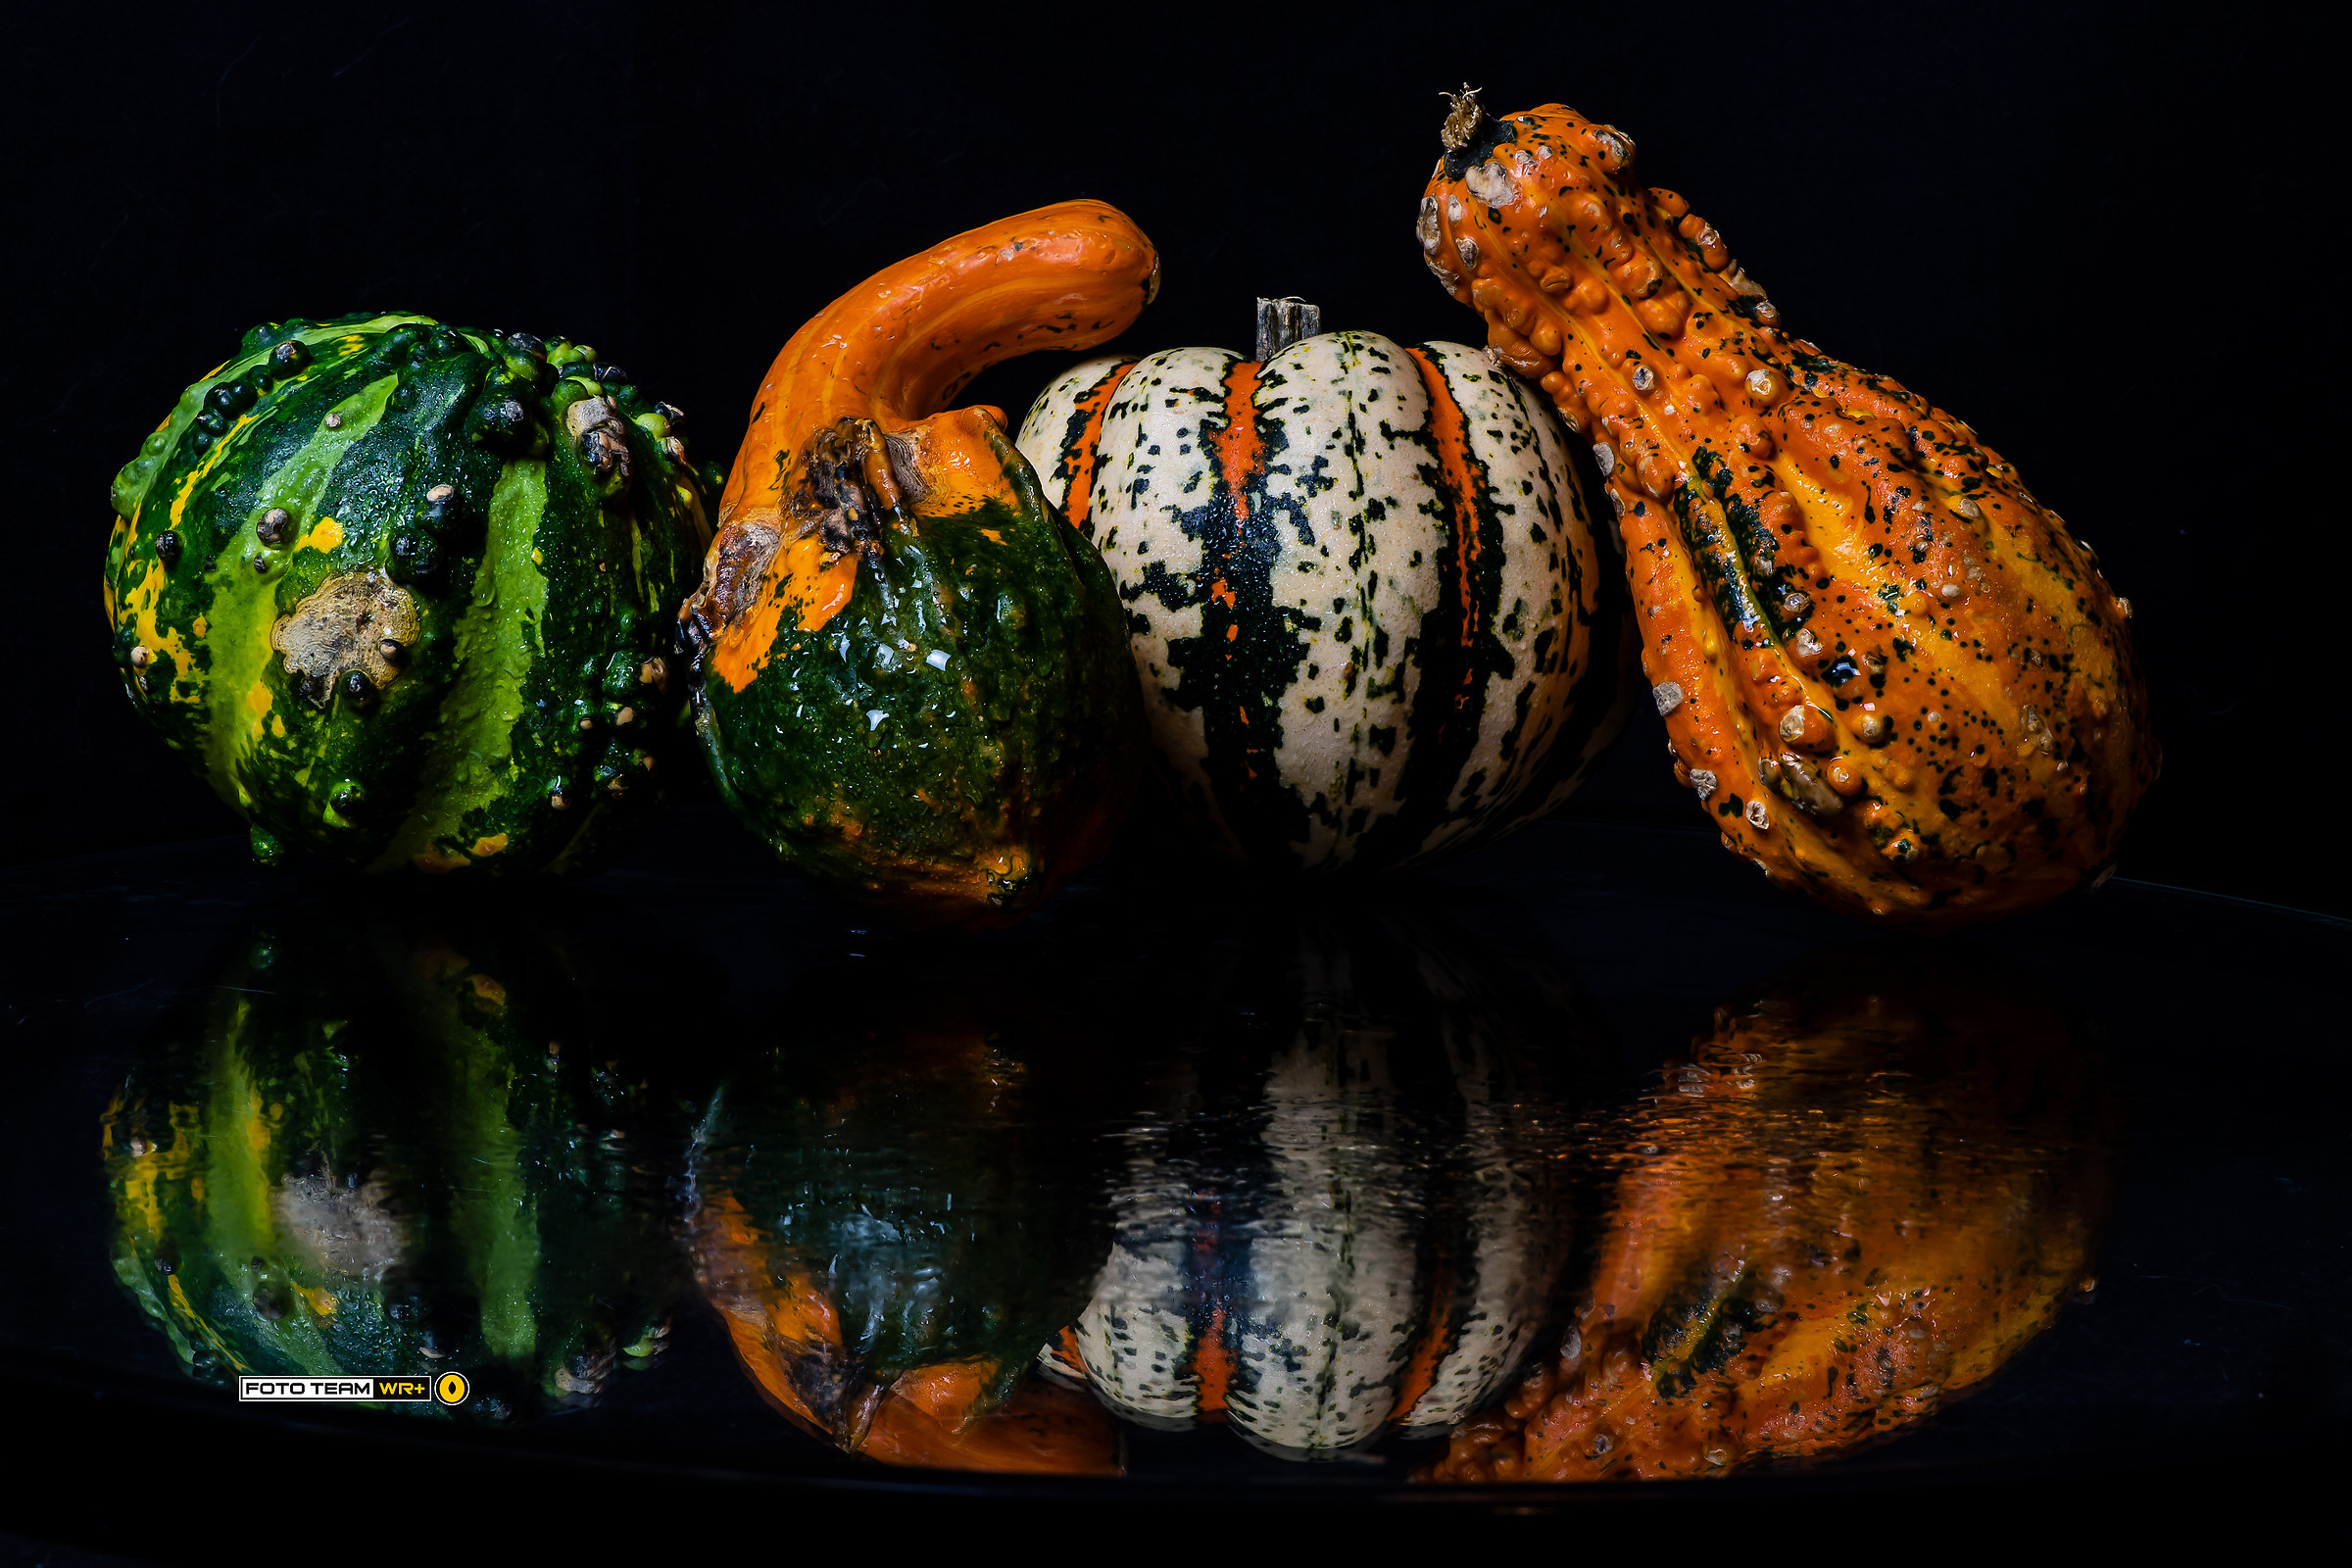 The Pumpkins........